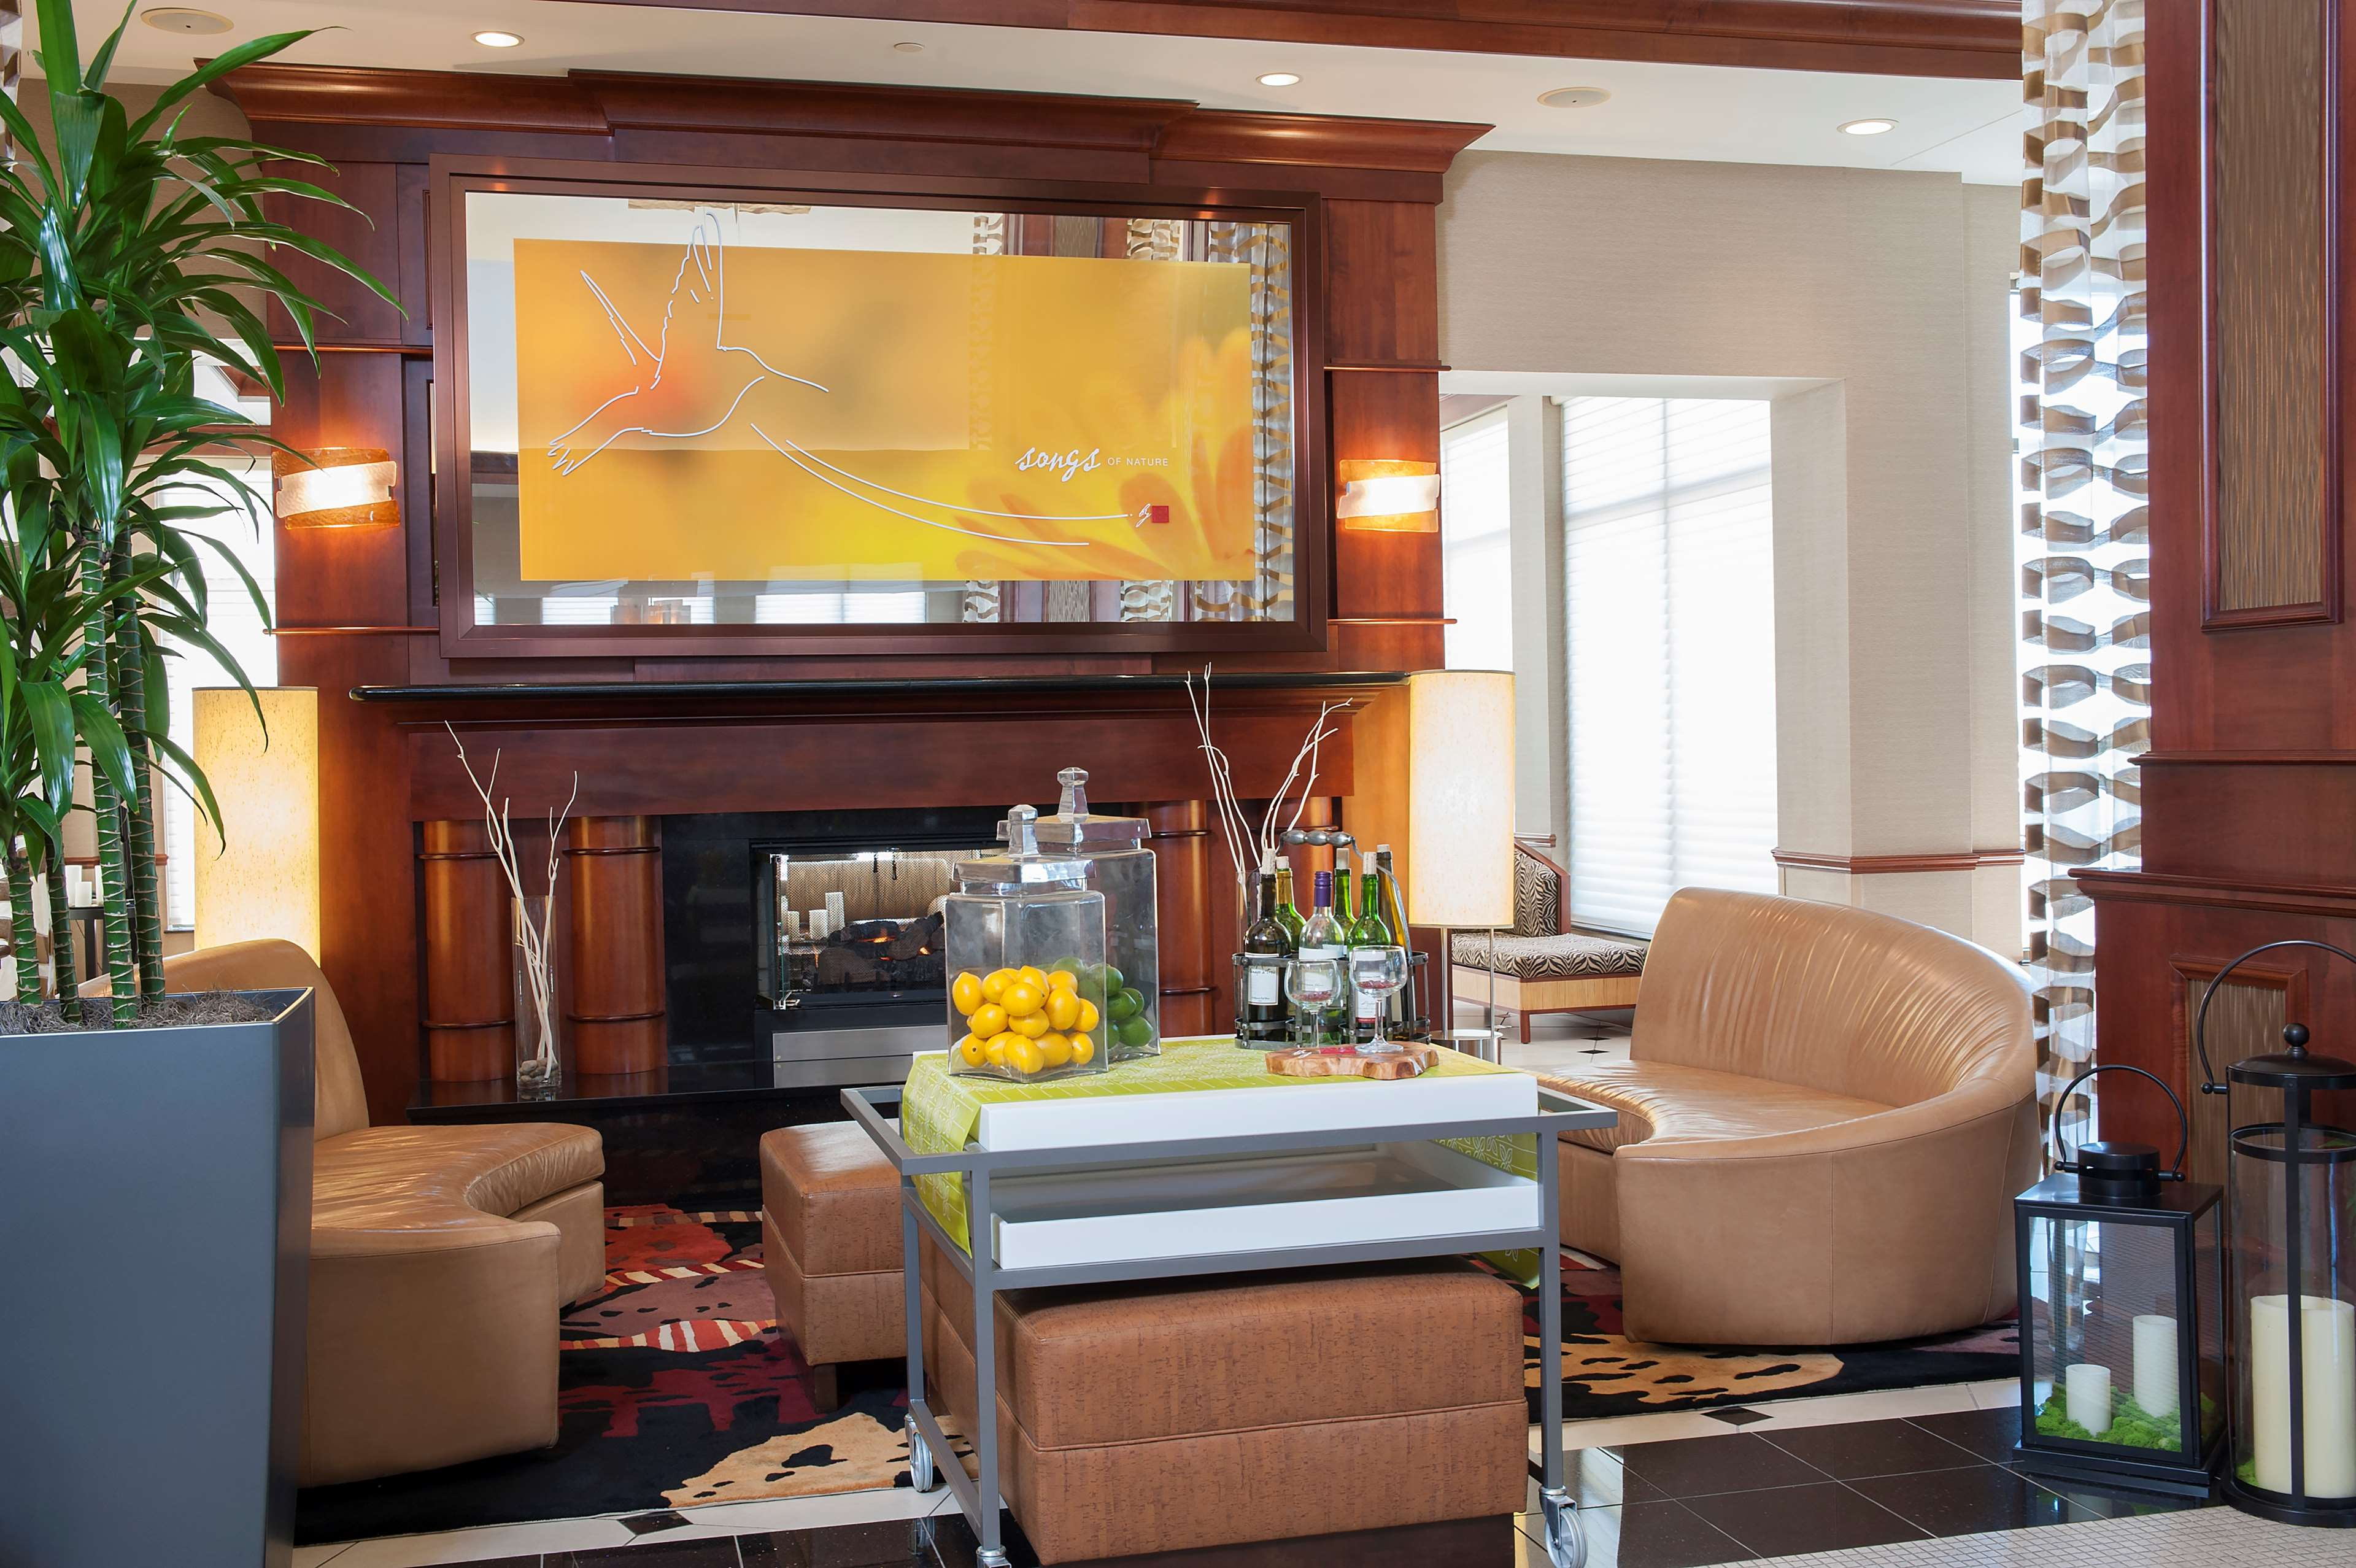 Hilton garden inn indianapolis south greenwood 5255 noggle way indianapolis in hotels motels for Hilton garden inn indianapolis south greenwood